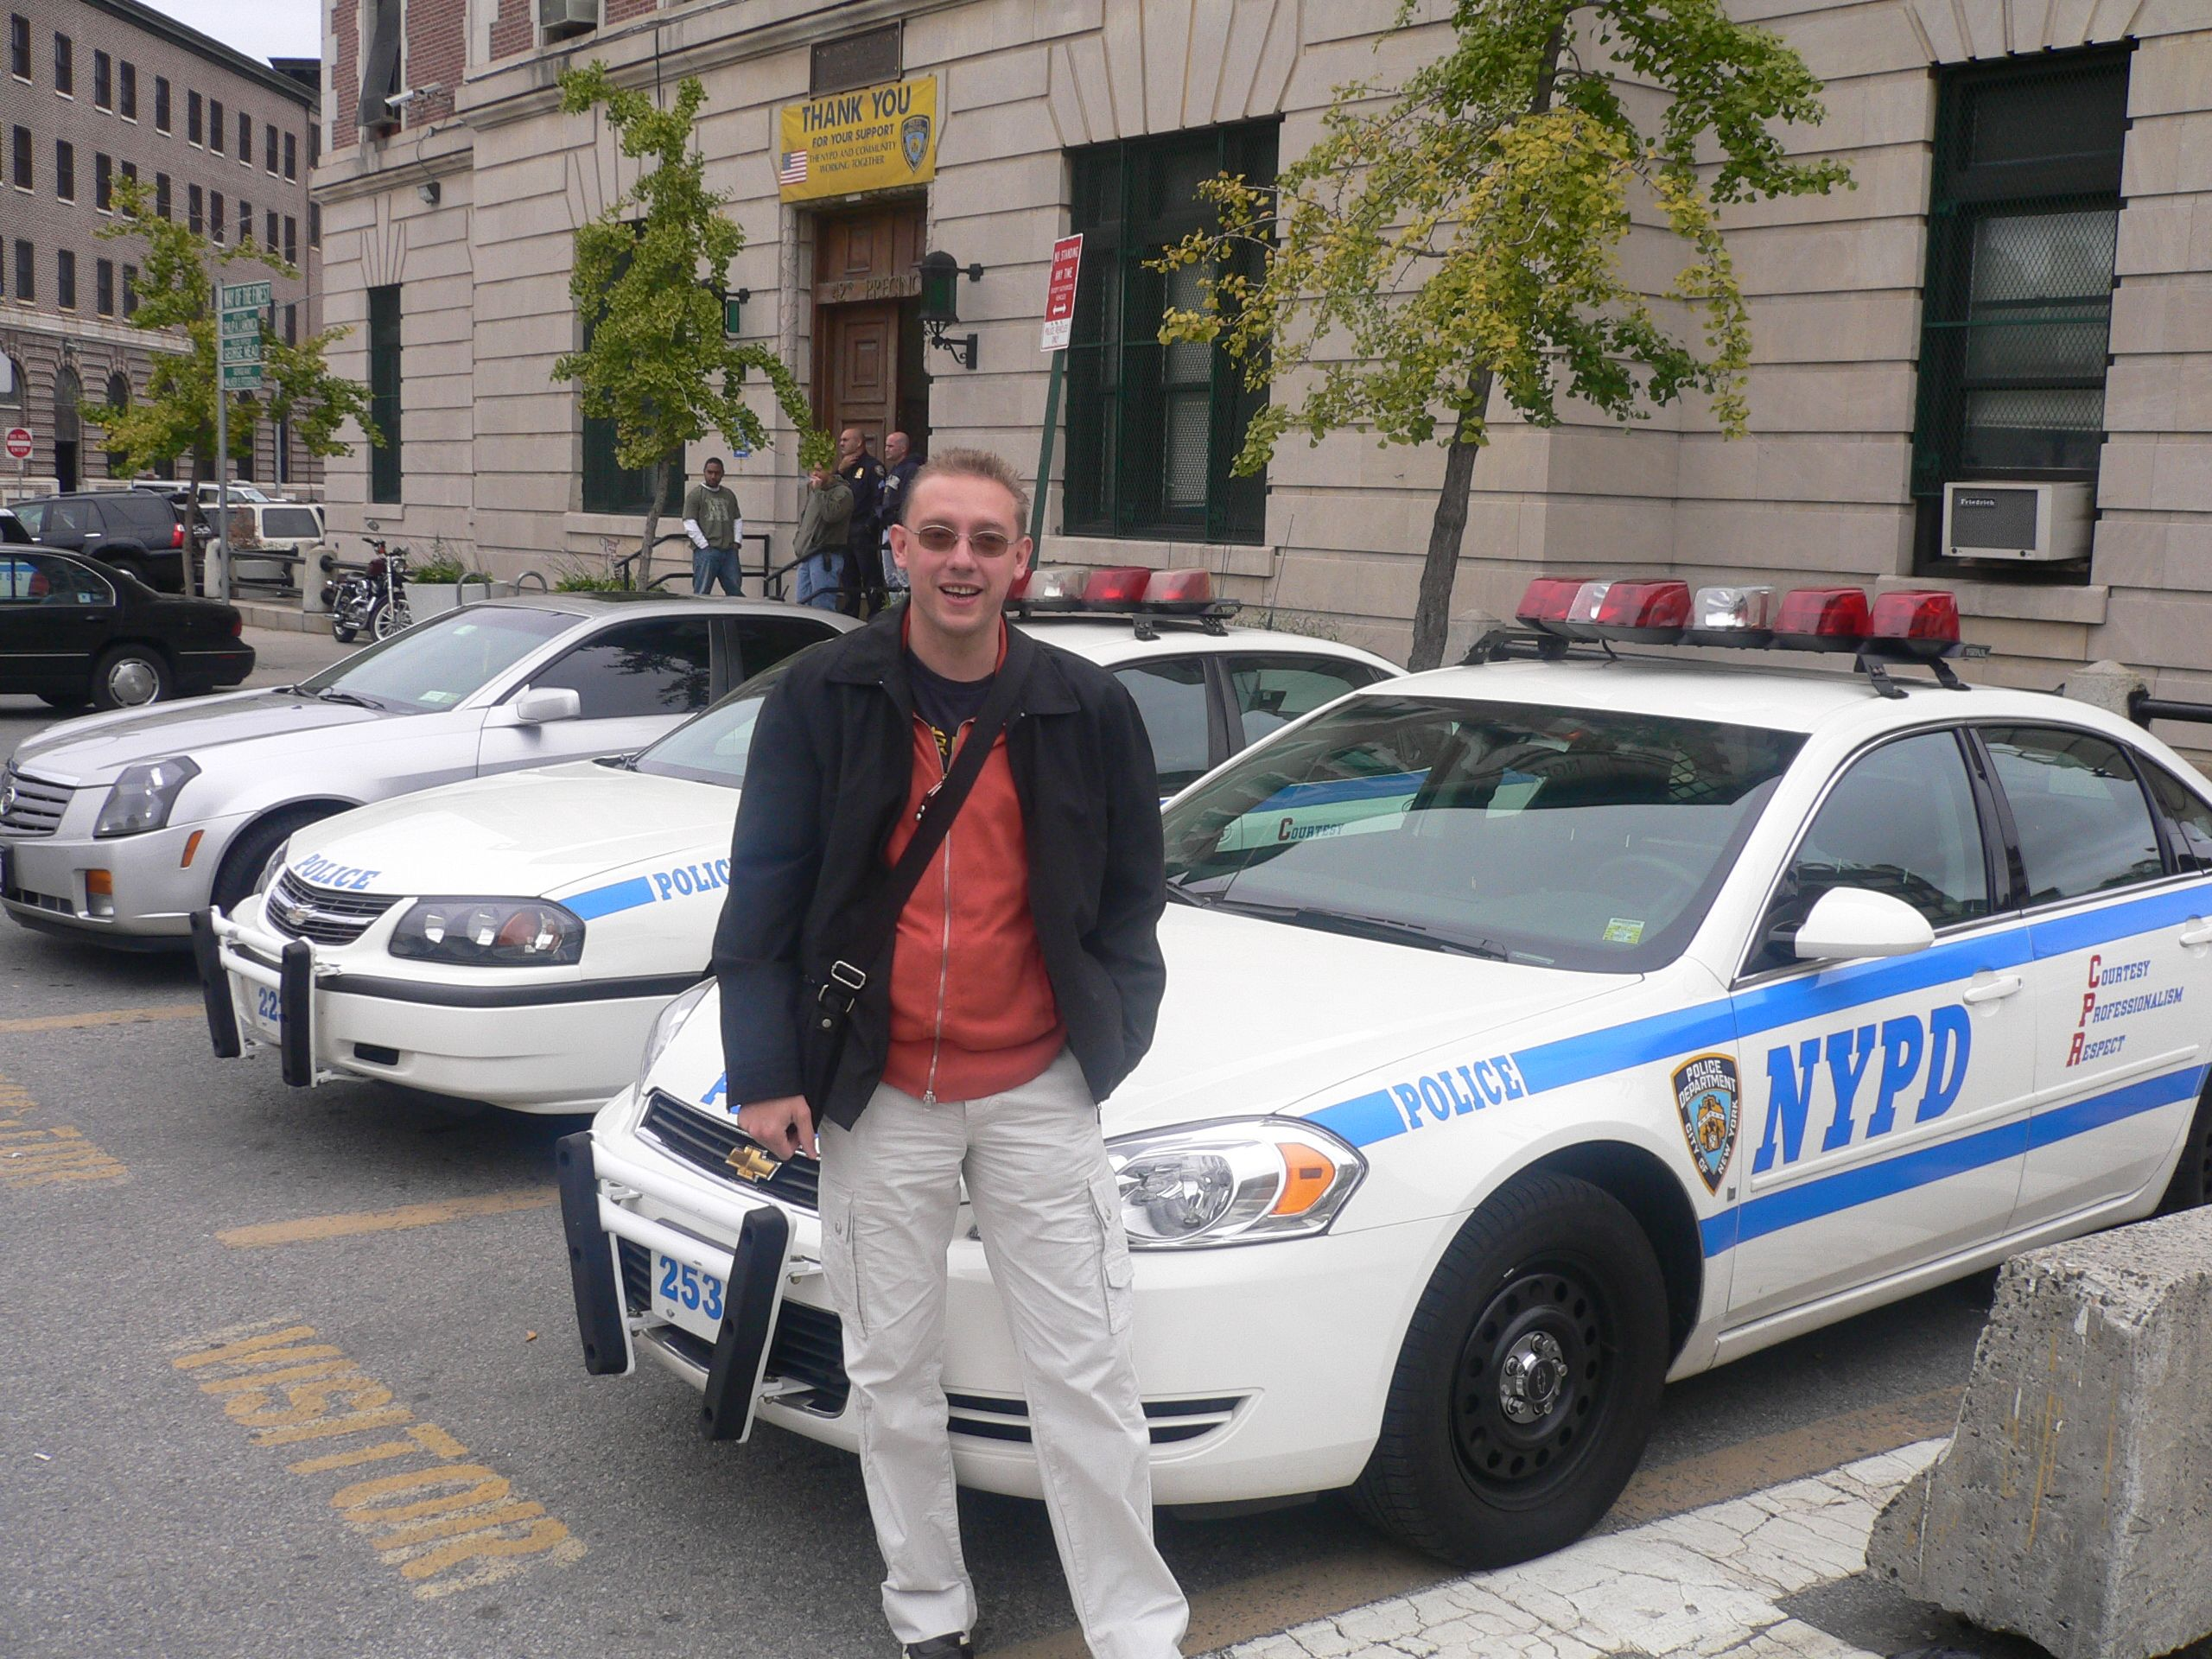 NYPD - Police